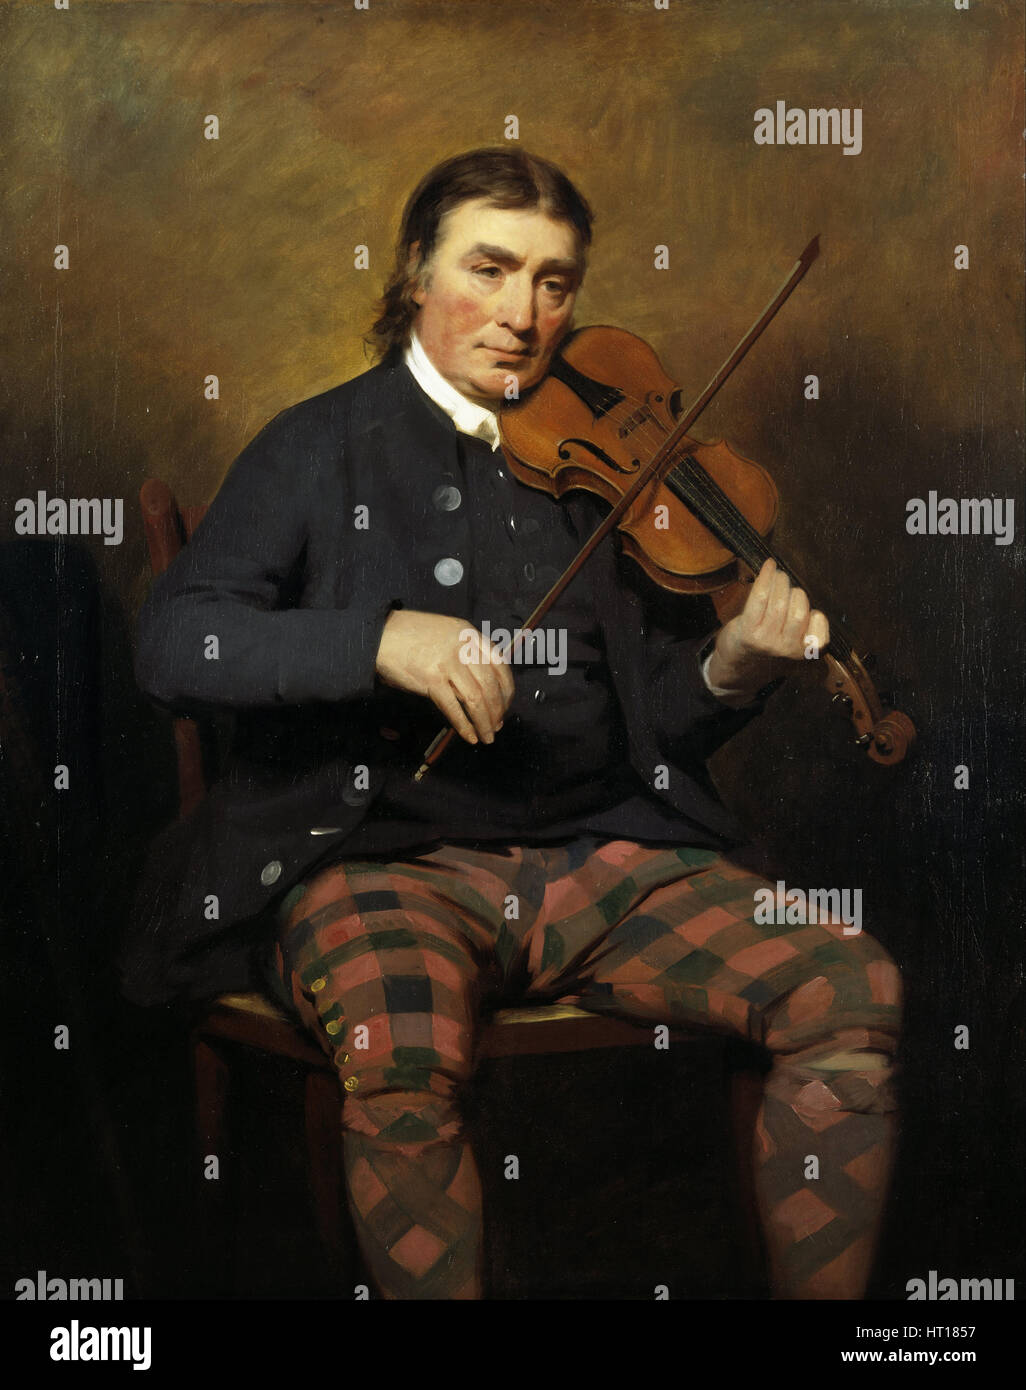 Portrait of the Violinist and composer Niel Gow (1727-1807), 1787. Artist: Raeburn, Sir Henry (1756-1823) - Stock Image